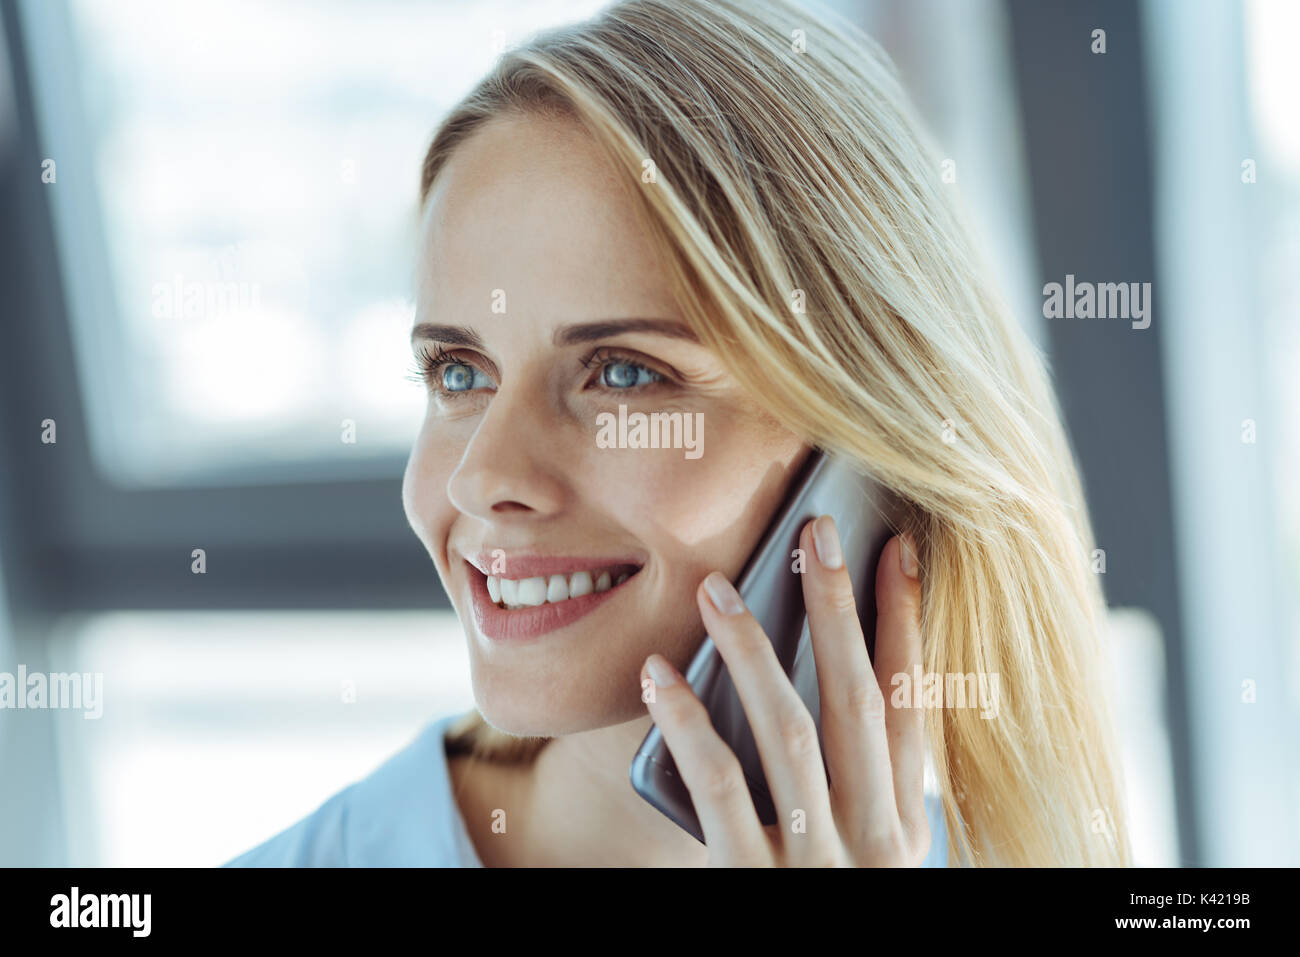 Happy woman having a conversation on the phone - Stock Image